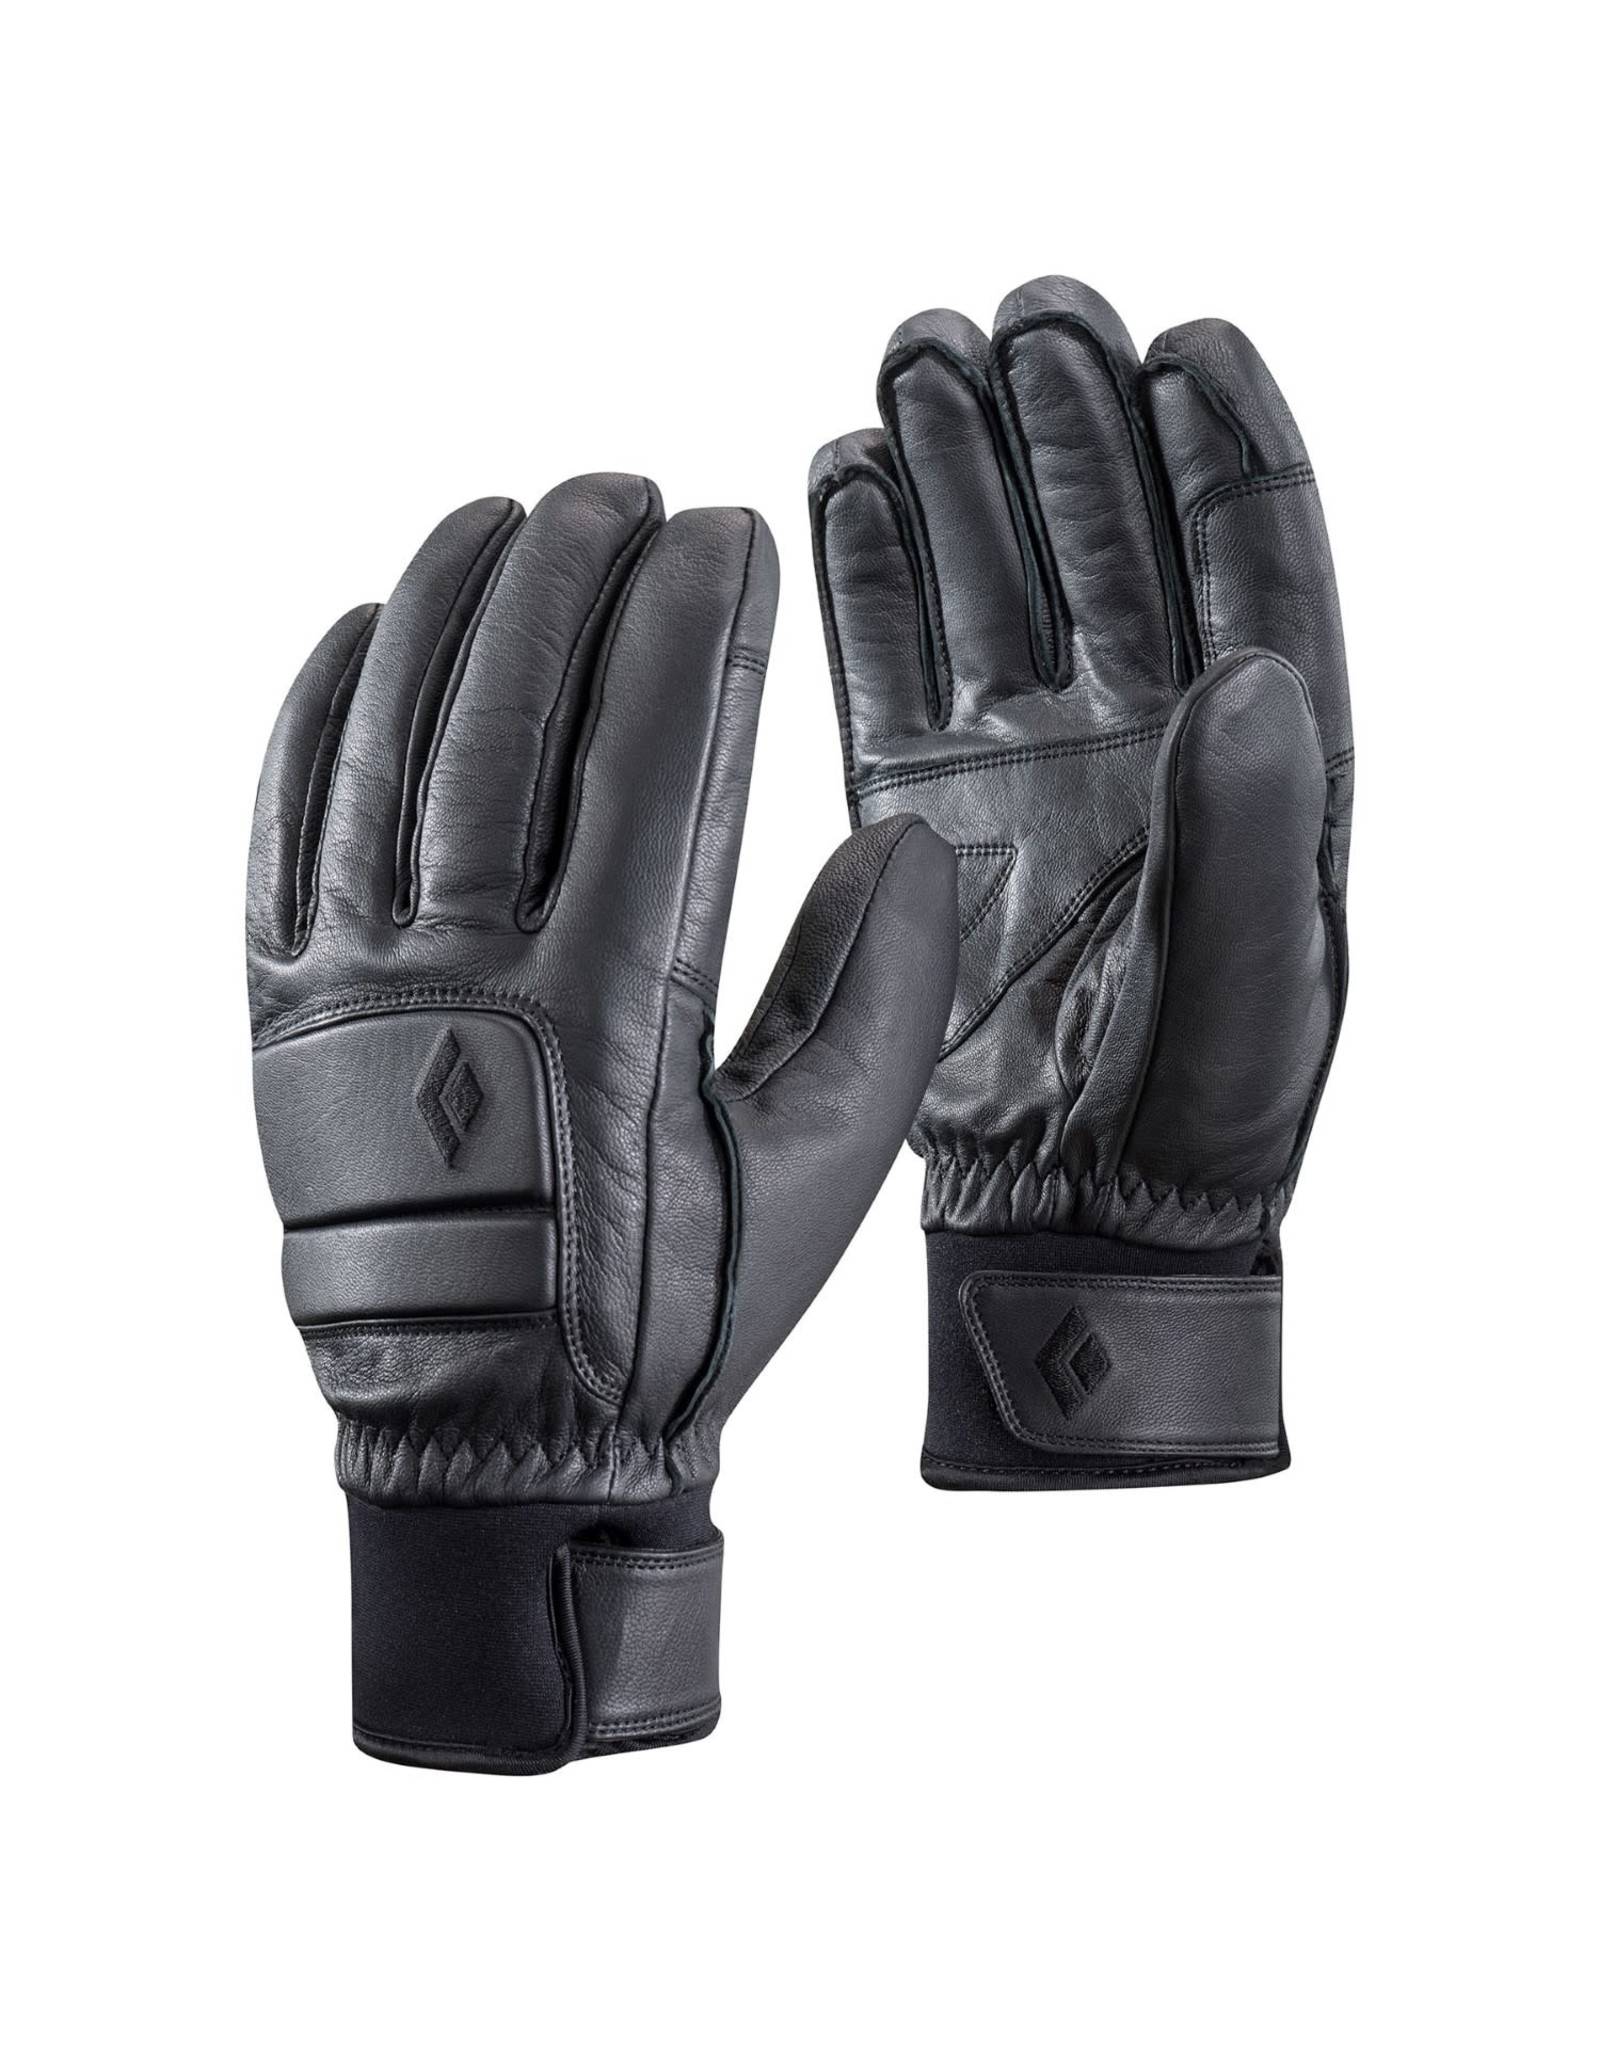 Black Diamond Black Diamond Spark Glove - Men